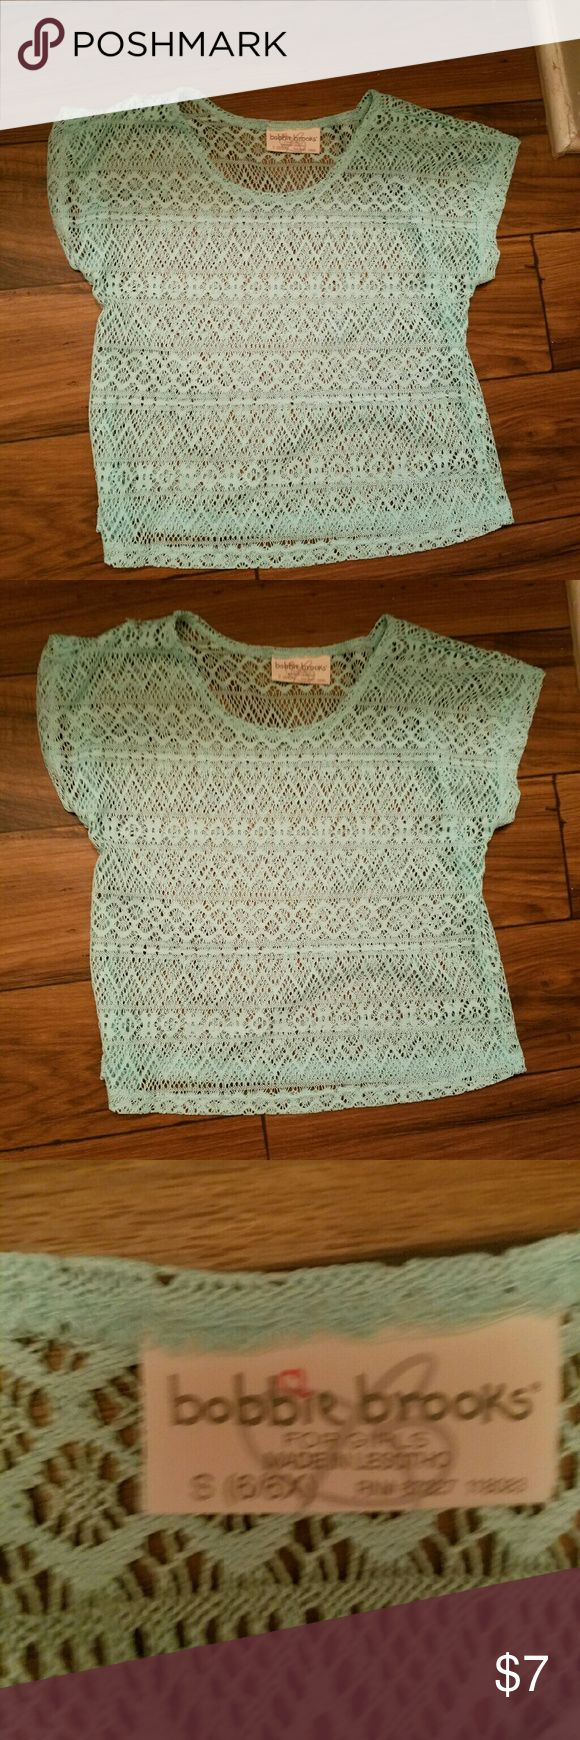 Cute mint colored Bobbie Brooks see through top Looks cute with a tank top underneath it. Bobbi Brooks Shirts & Tops Blouses